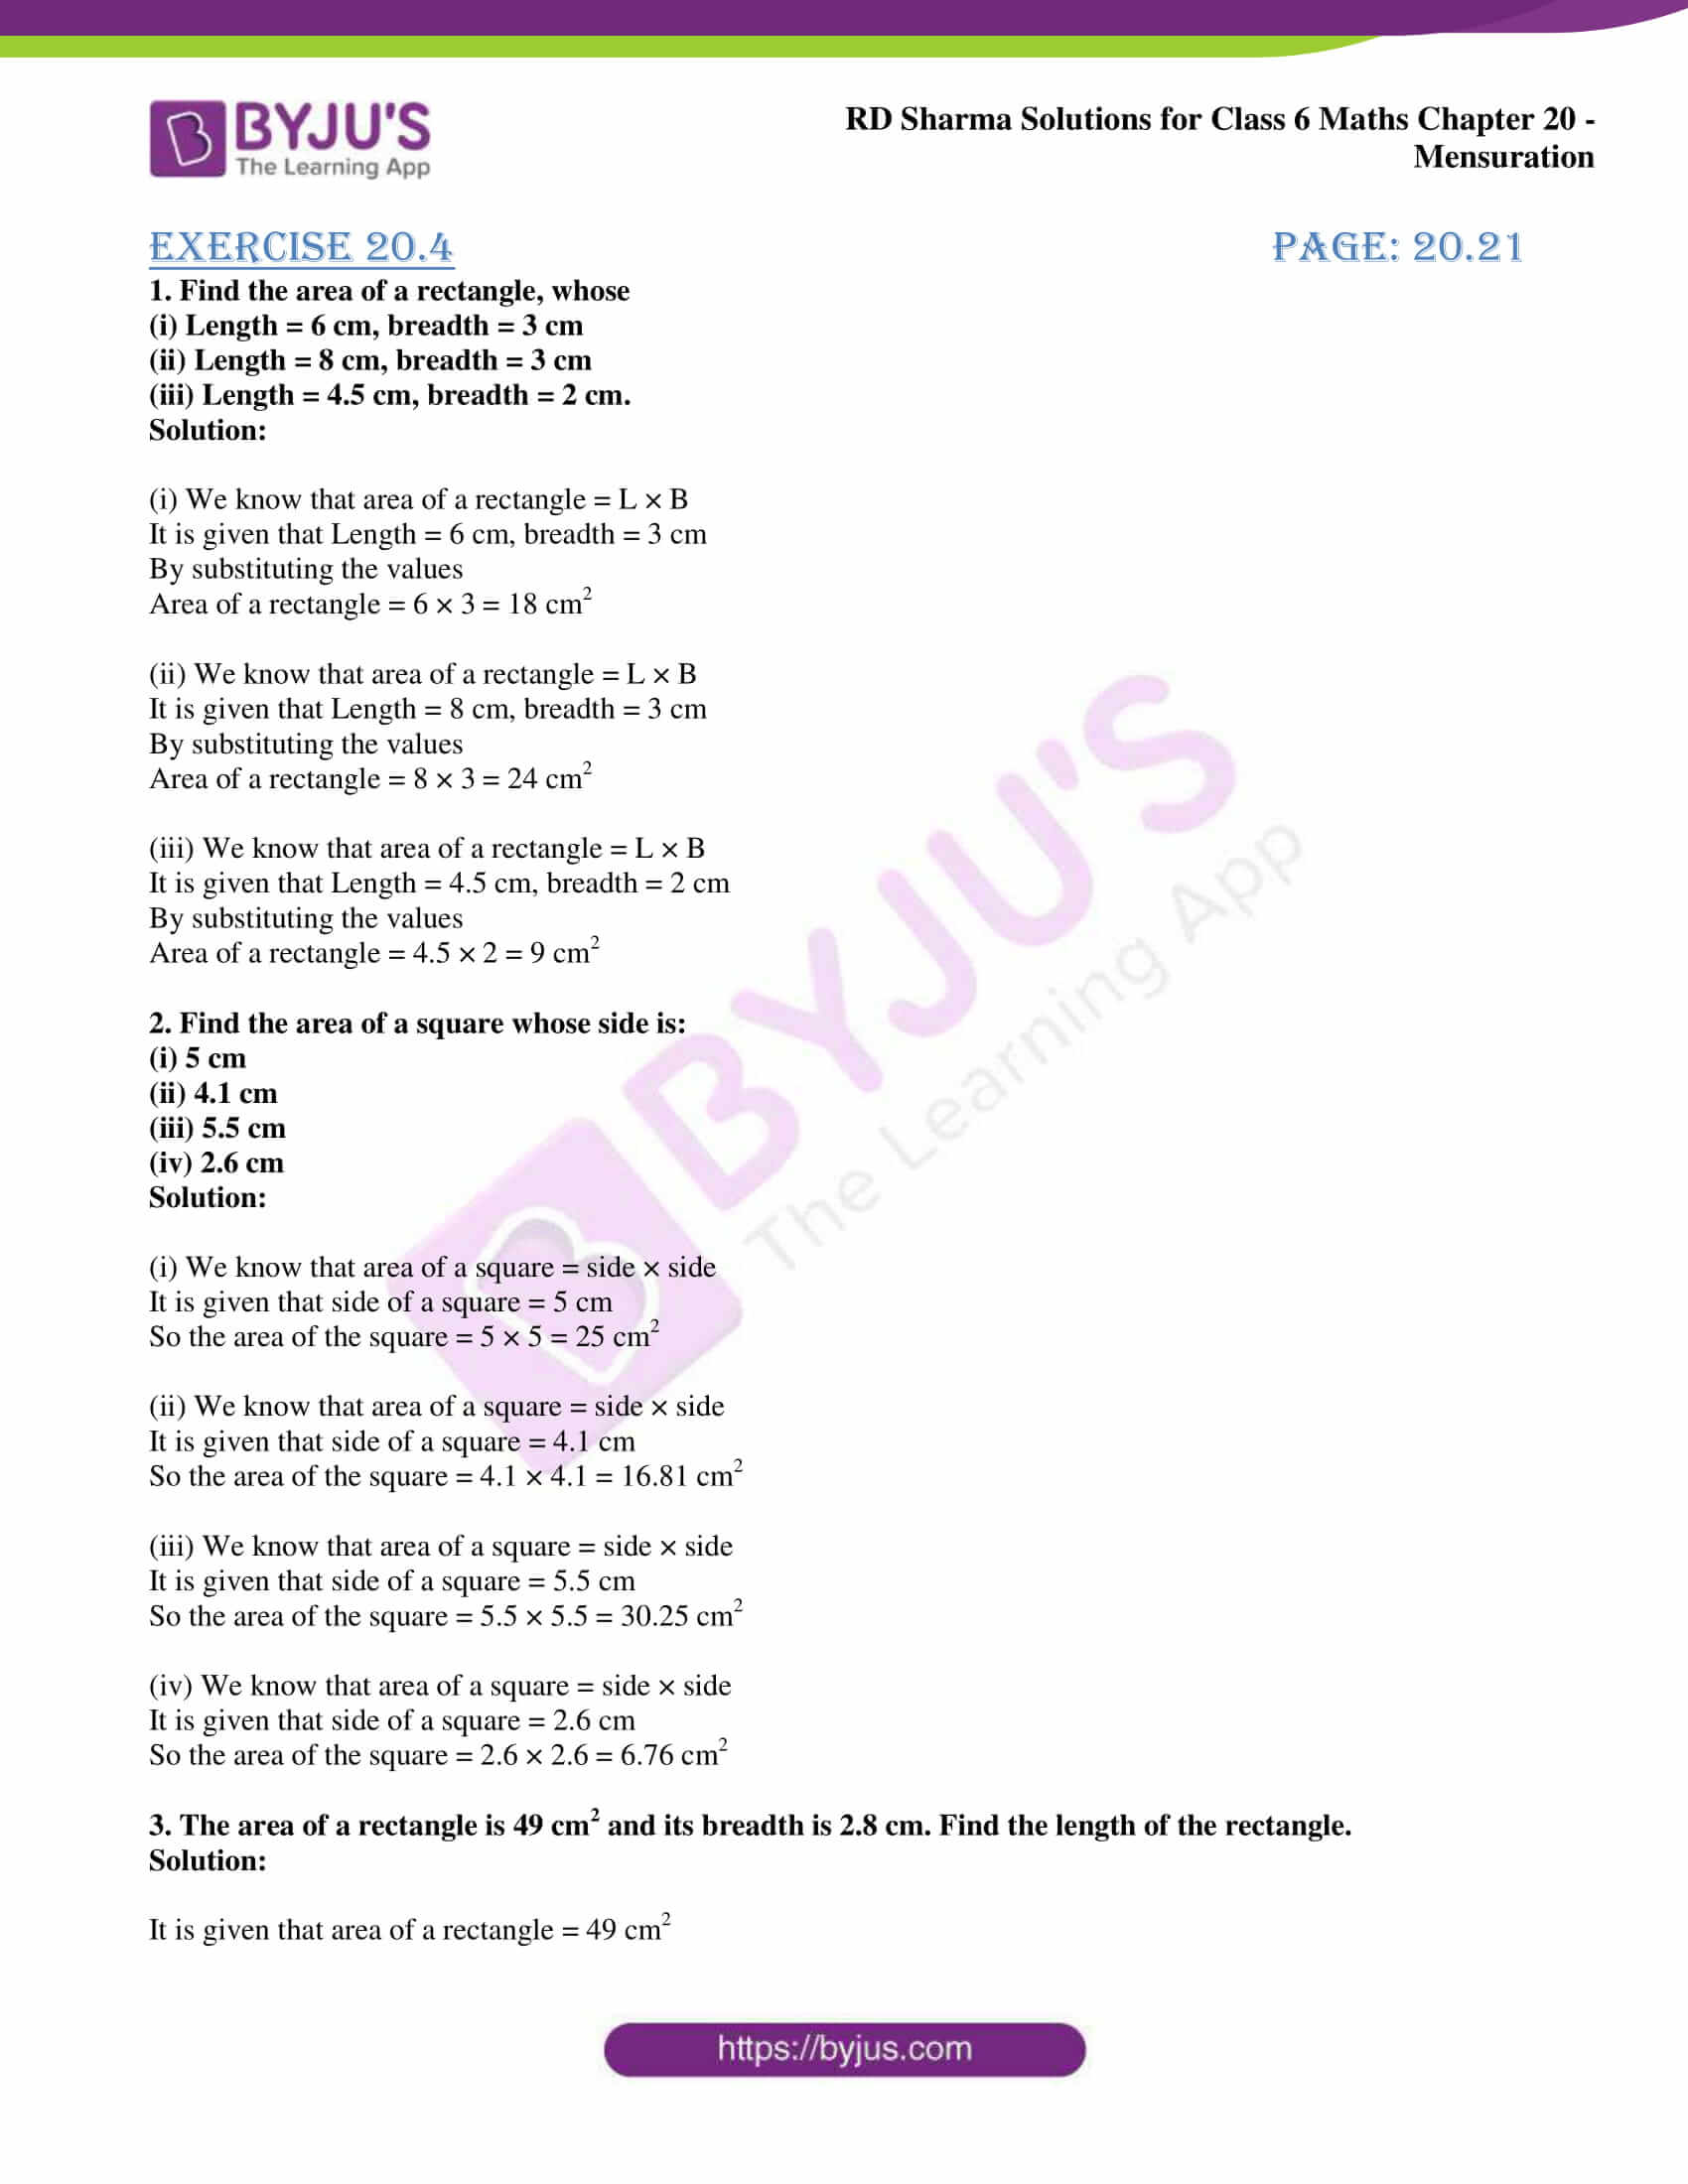 rd sharma solutions nov2020 class 6 maths chapter 20 exercise 4 1